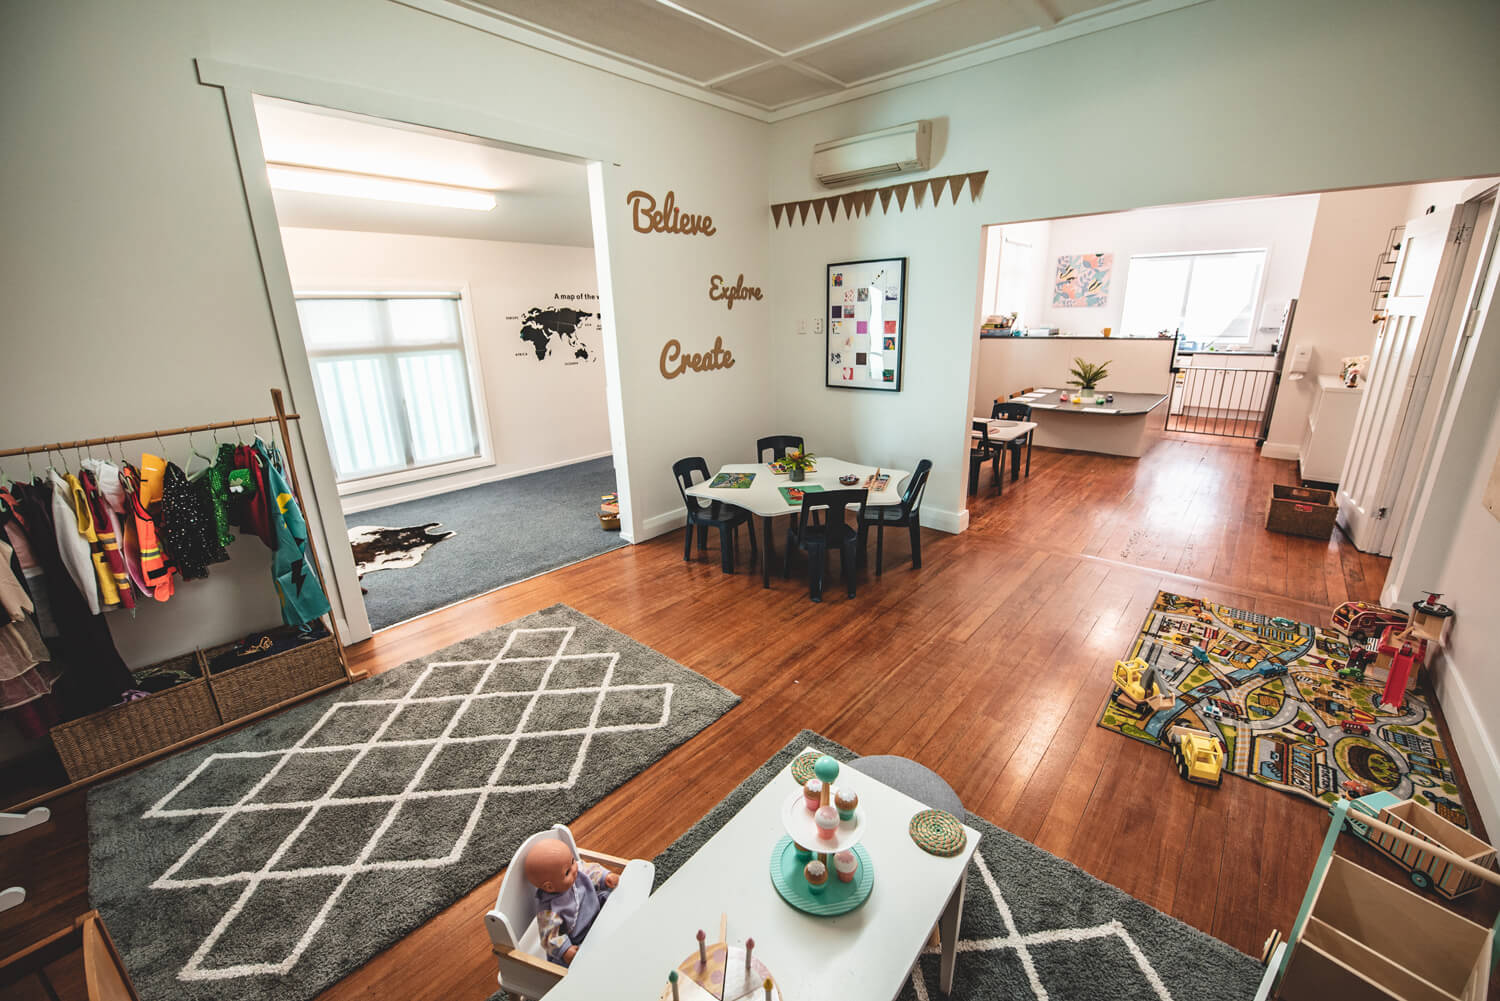 buckle-my-shoe-early-learning-centre-tauranga-about-gallery-5.jpg